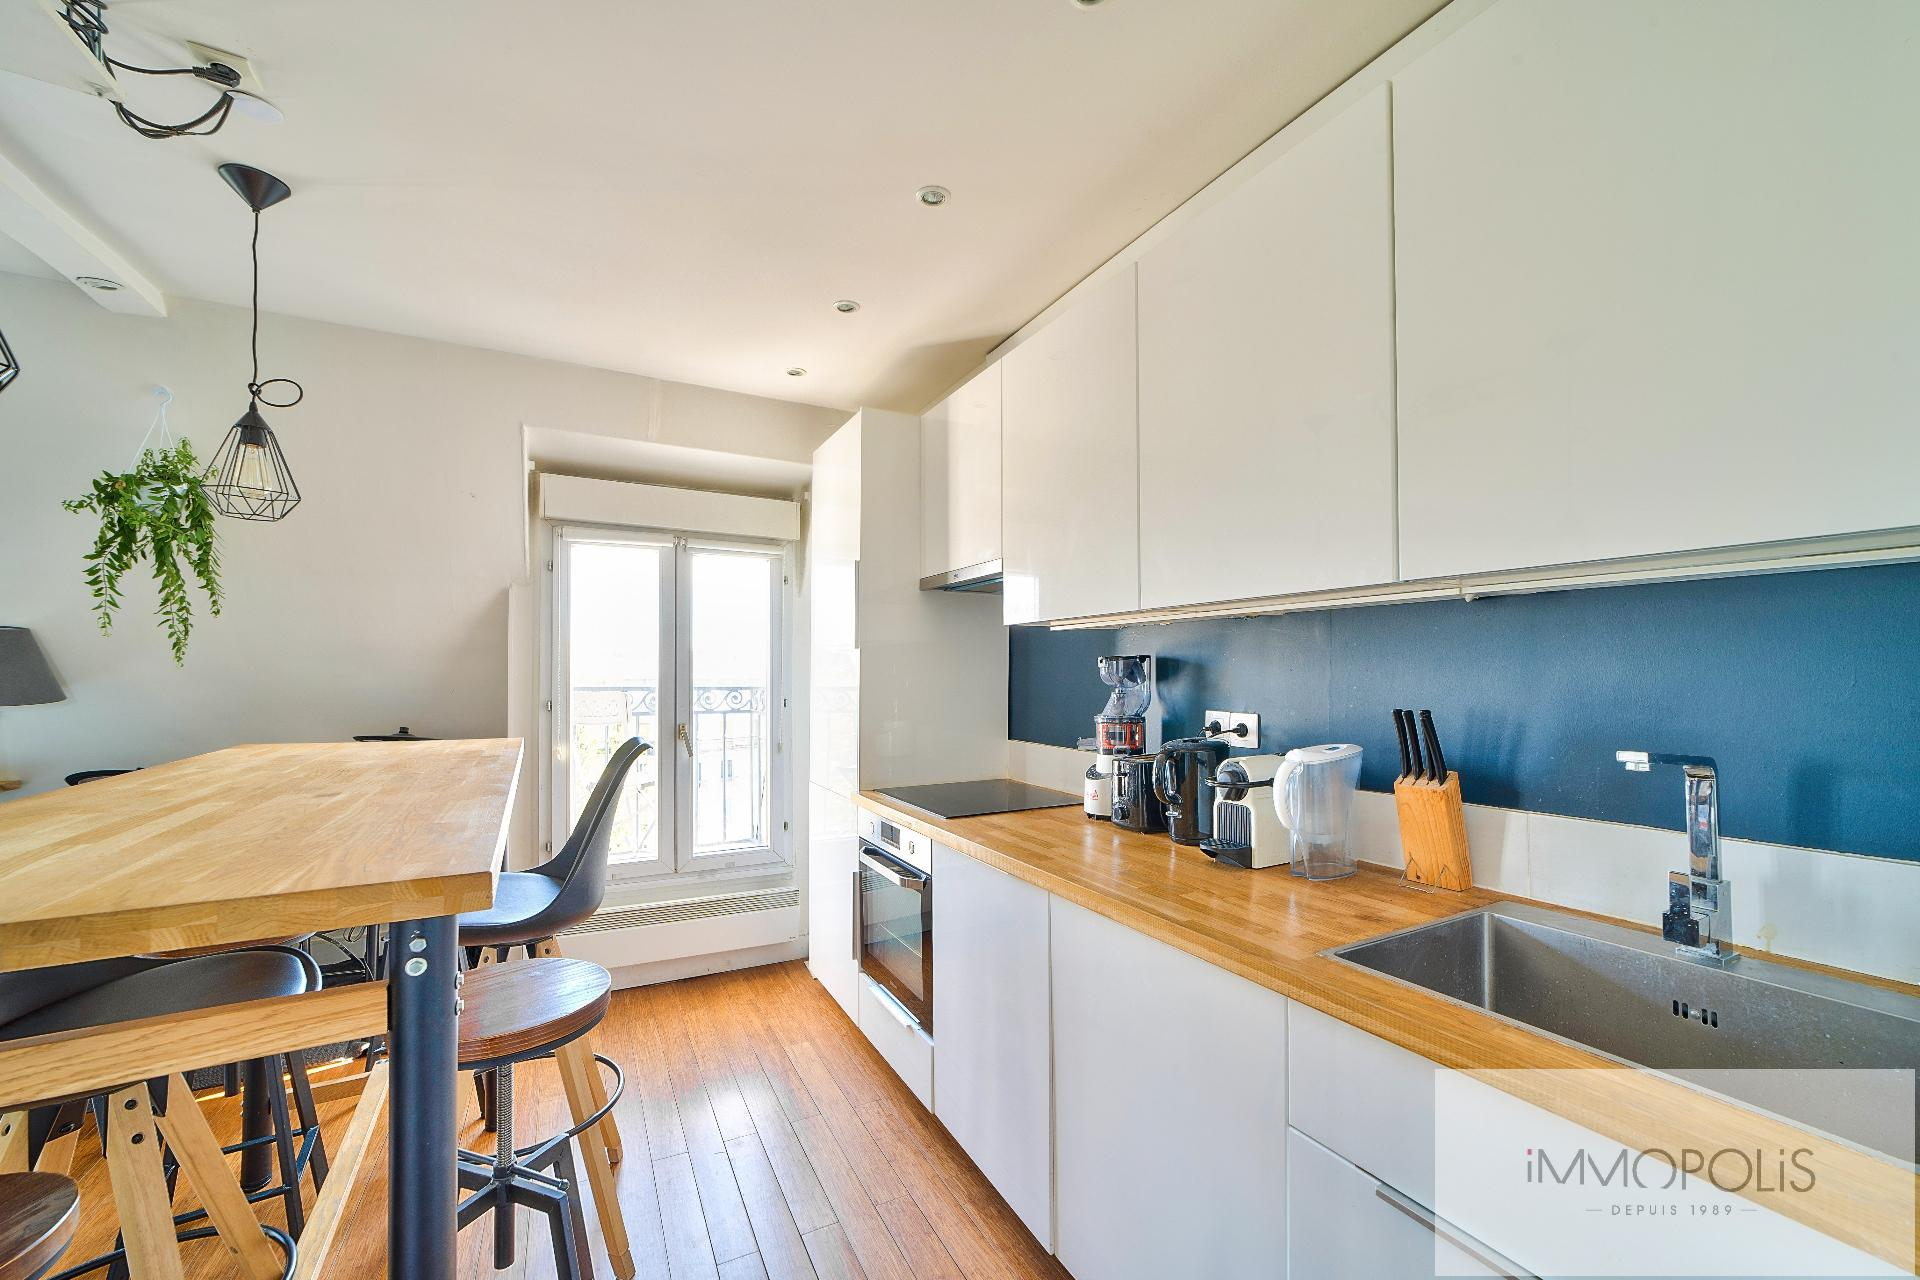 Beautiful 2 rooms in 6th and last floor not overlooked, full sun, with 2 balconies! 7